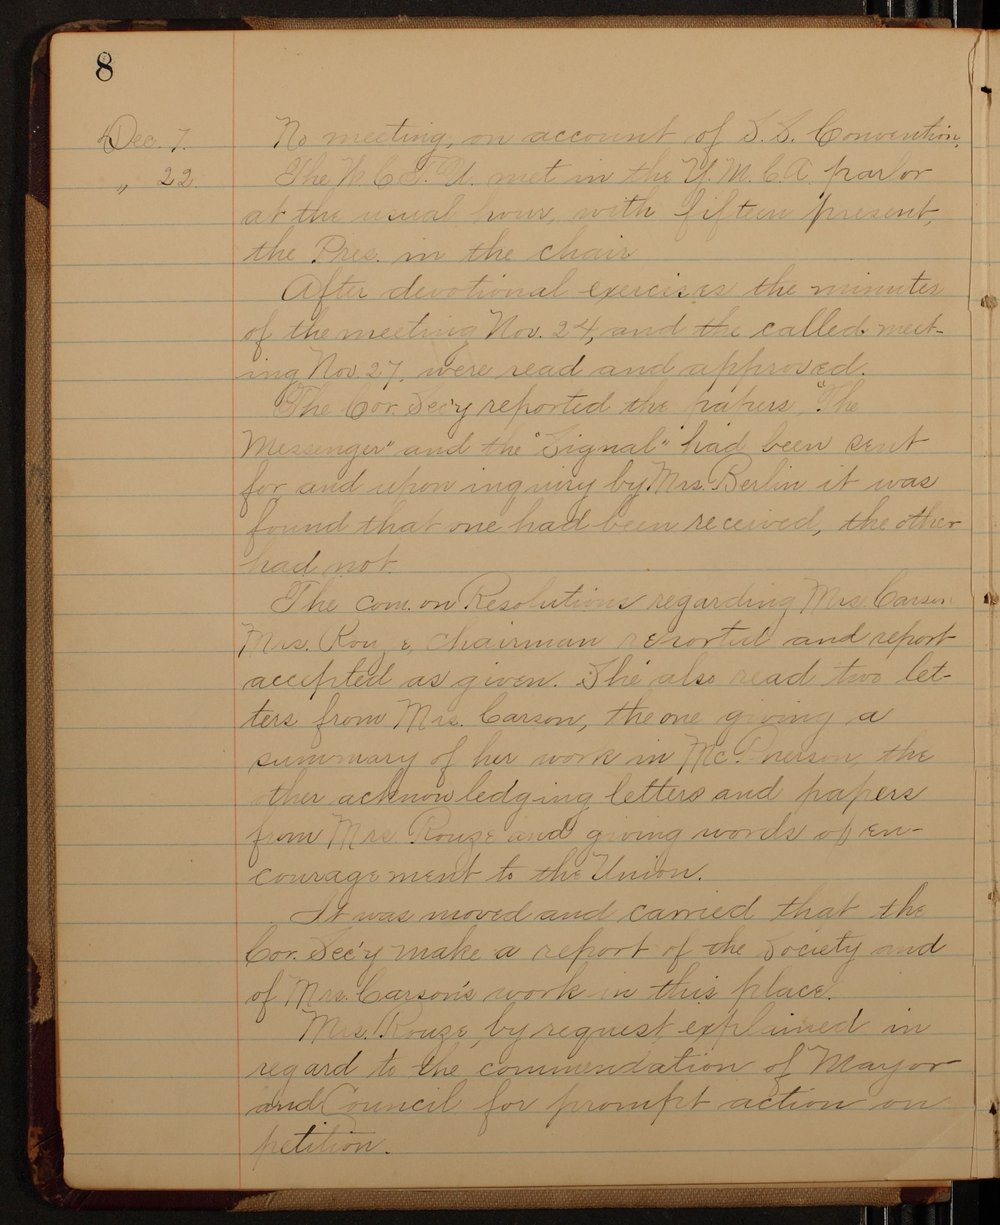 Minutes of the McPherson Chapter of the Woman's Christian Temperance Union - 8